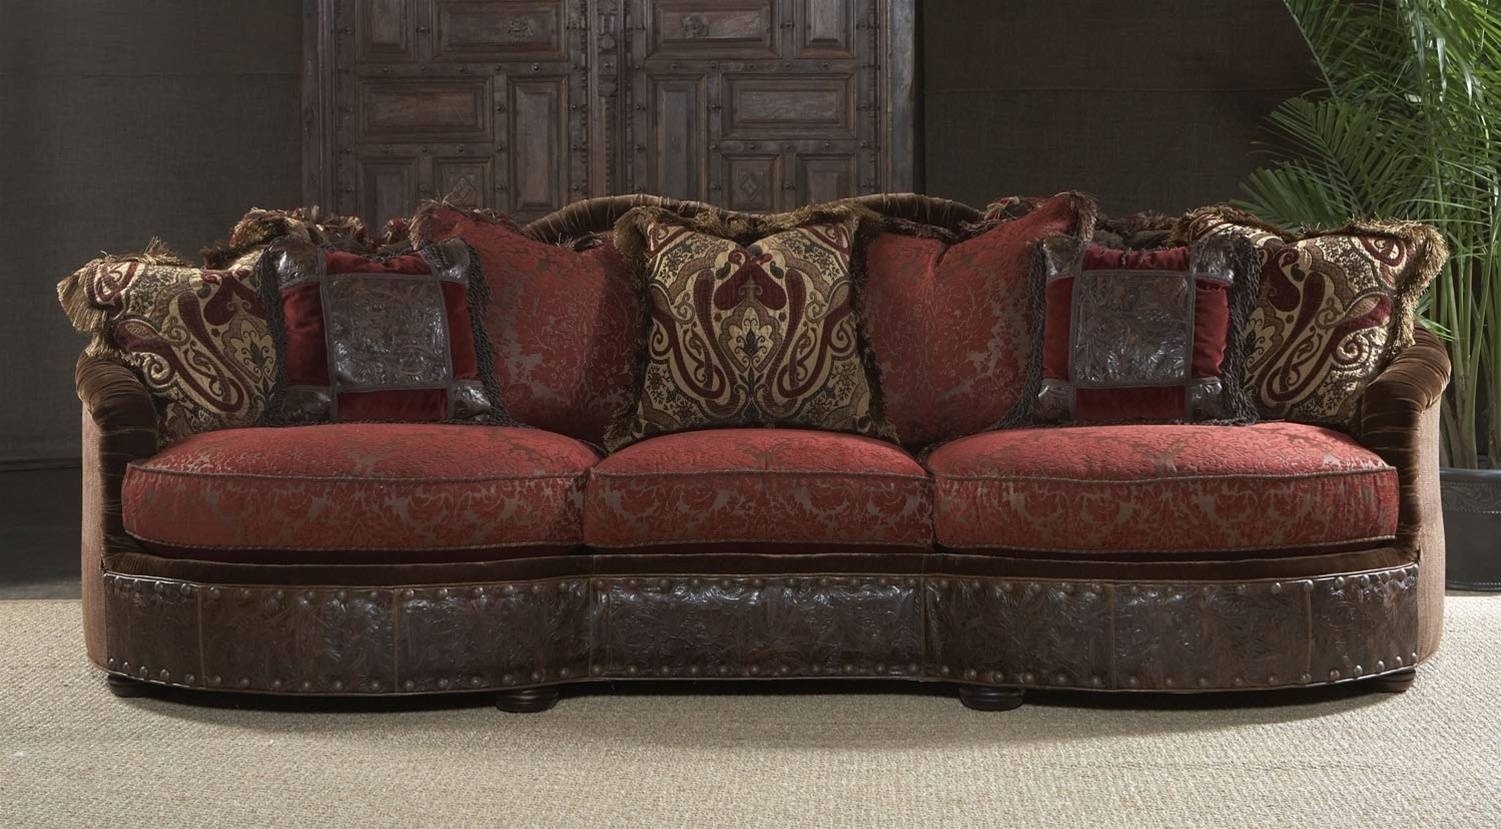 11 Luxury Red Burgundy Sofa Or Couch. for Burgundy Sectional Sofas (Image 1 of 15)